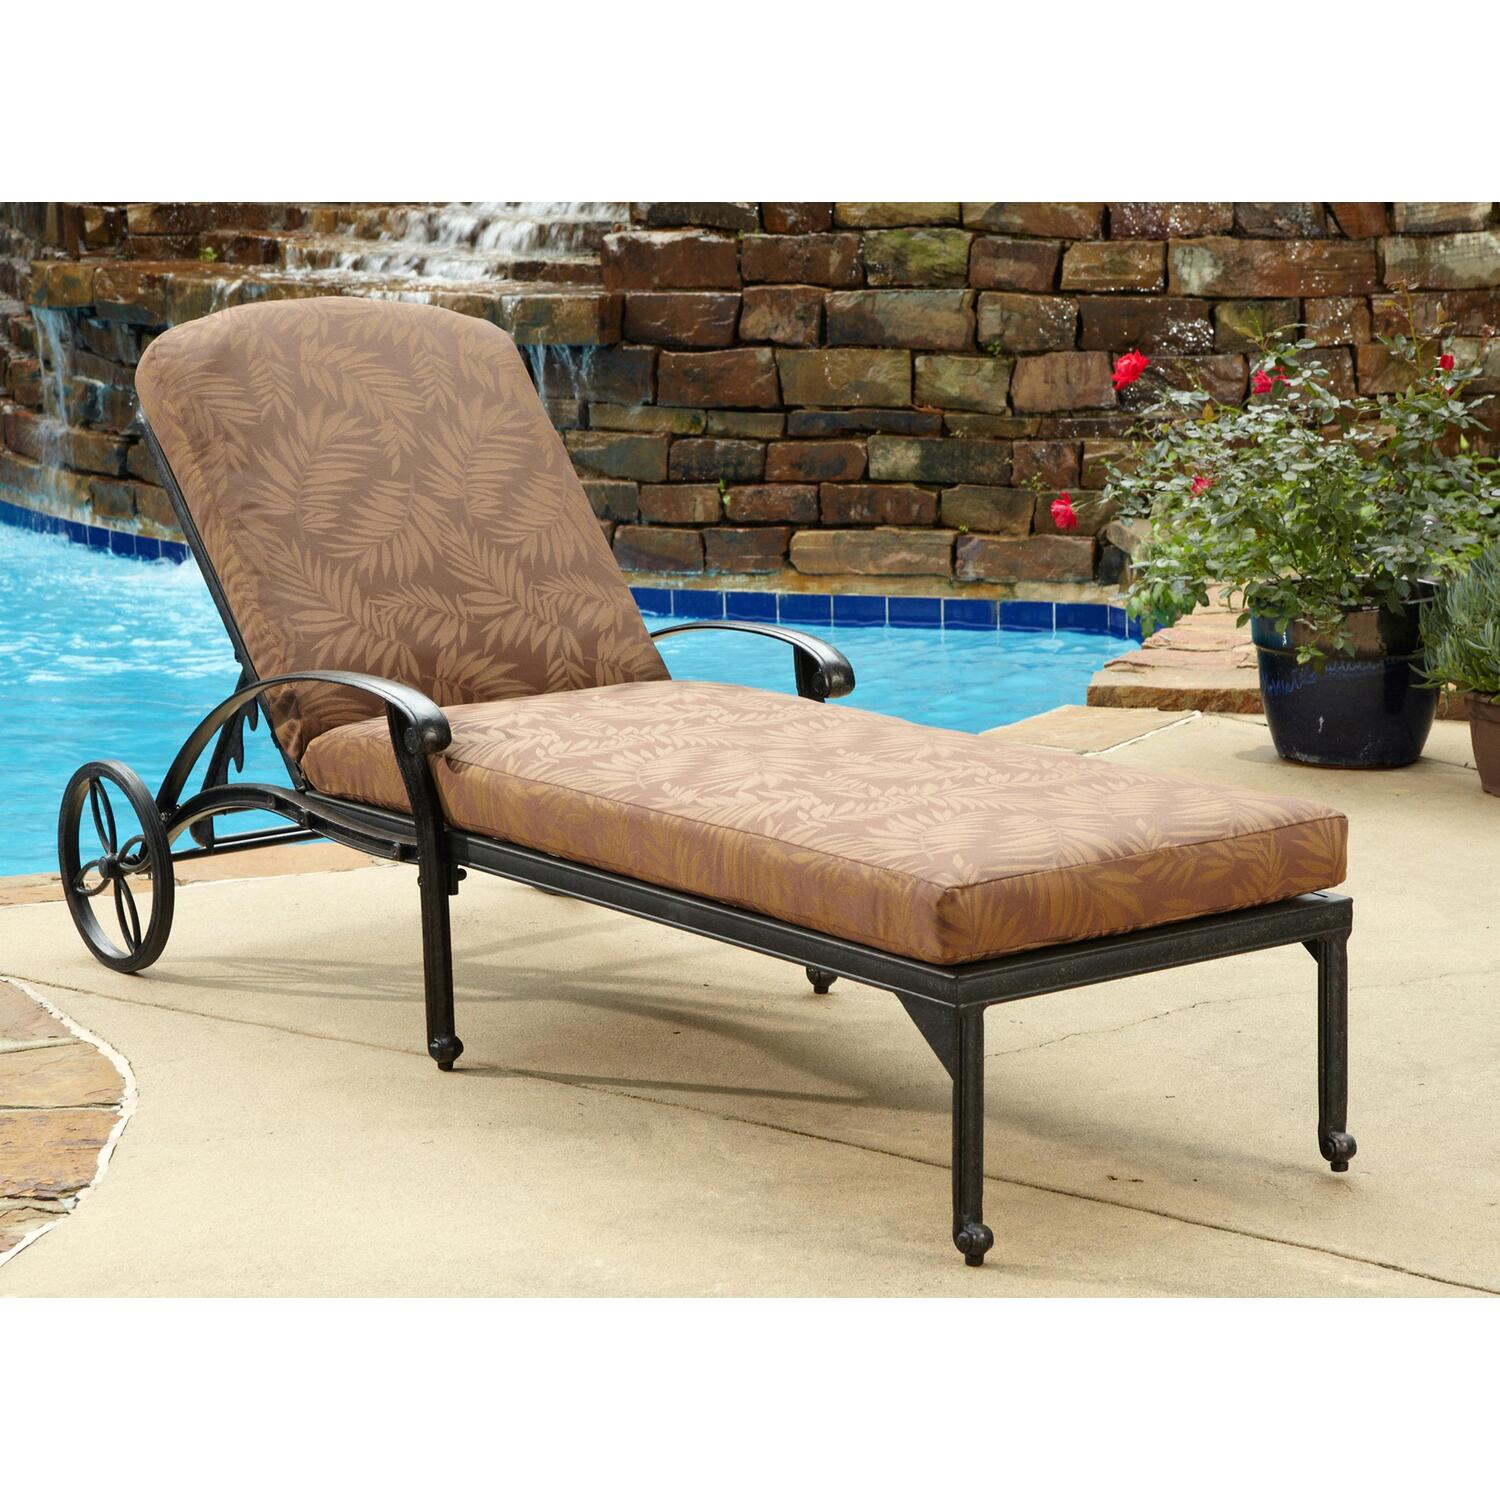 Floral Blossom Chaise Lounge Chair W Cushion Ojcommerce